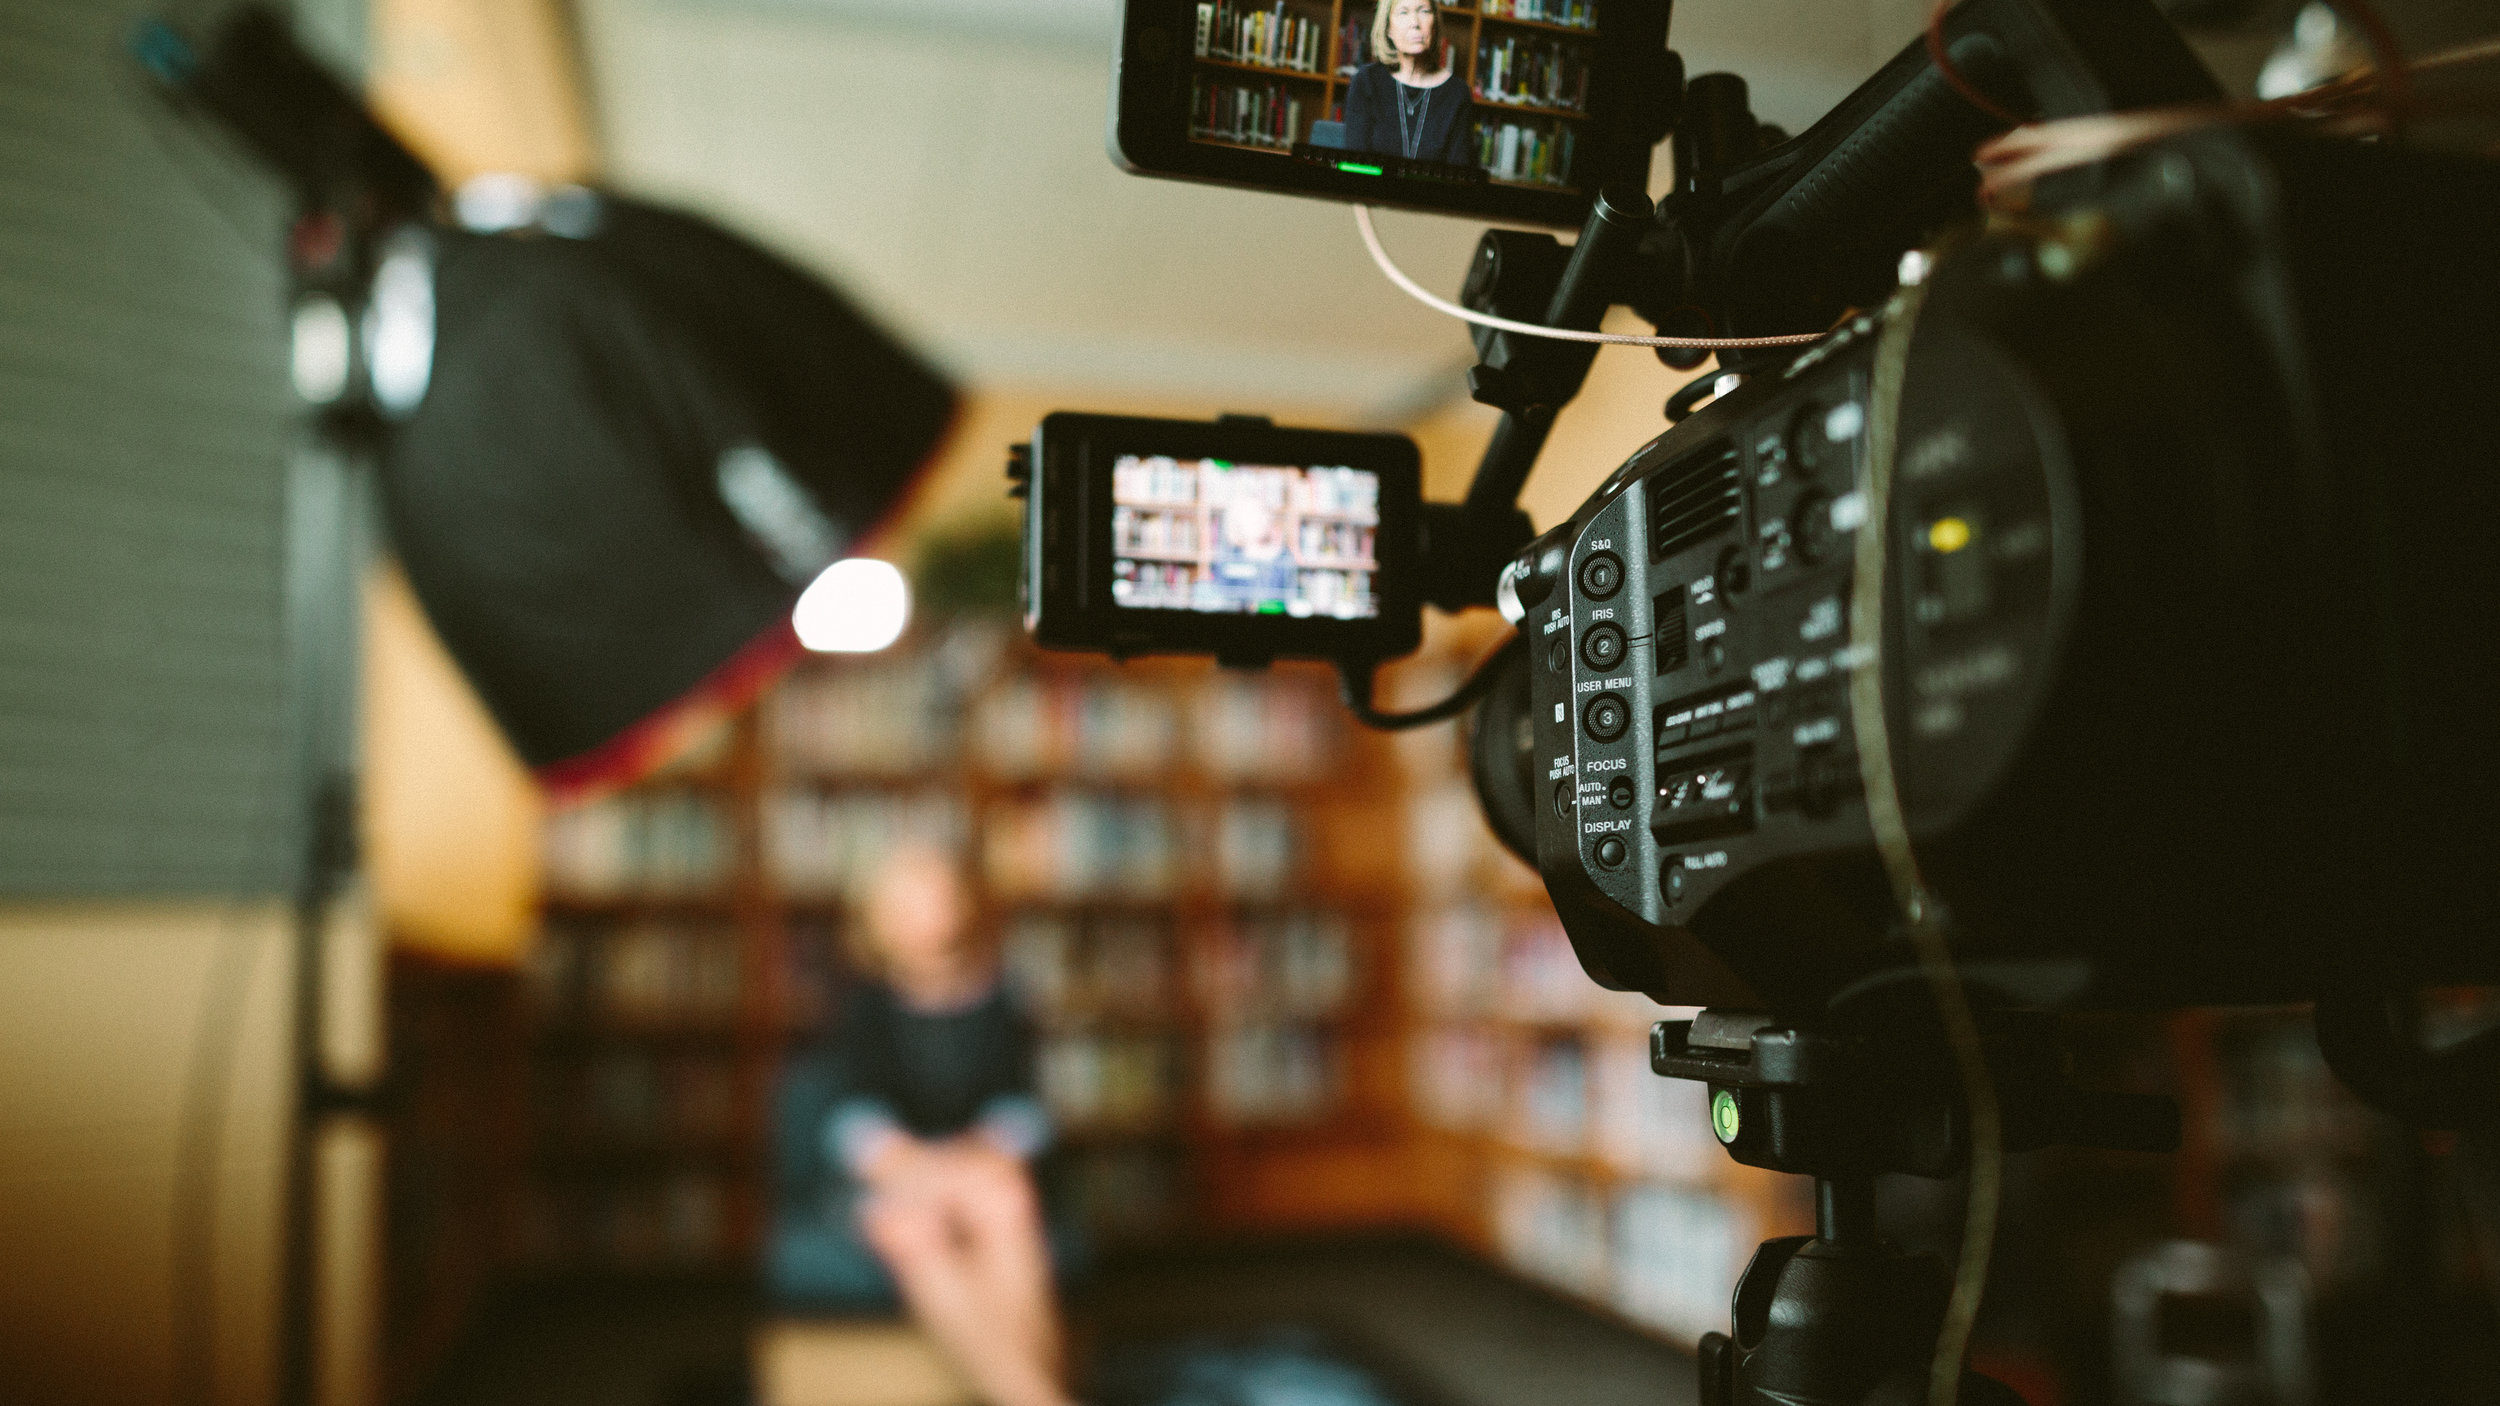 video production - Add an Emmy award-winning touch to your next video.